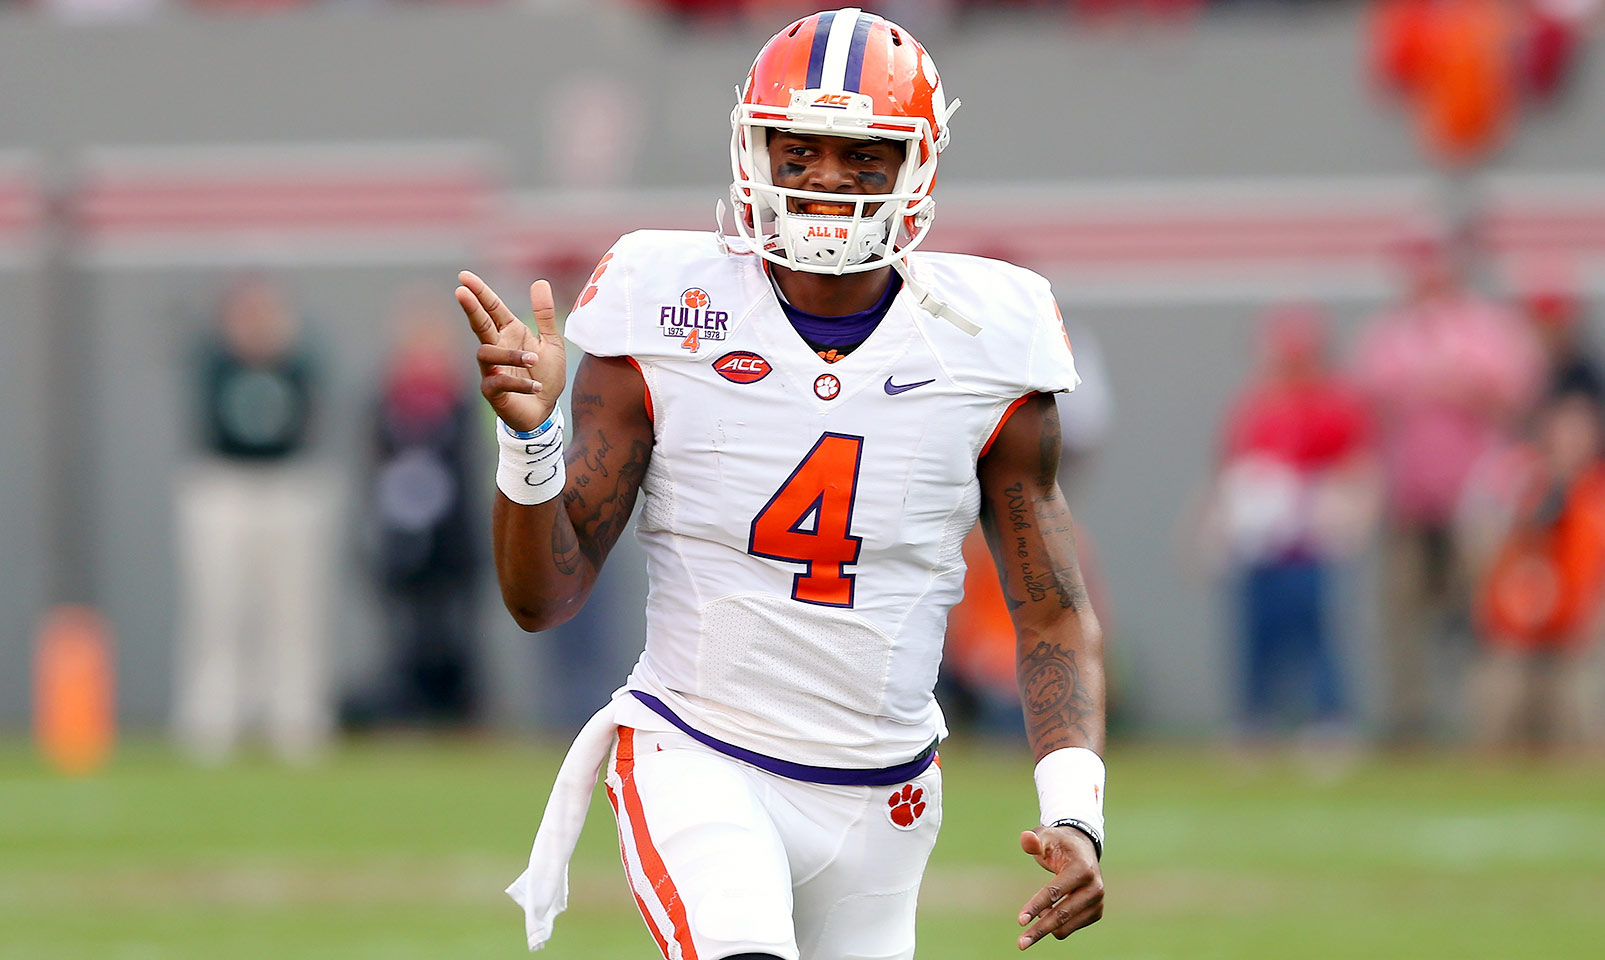 Clemson 56, NC State 41: Deshaun Watson scored six total touchdowns with 383 yards passing and 54 yards rushing. Wayne Gallman also chipped in 172 yards on the ground to keep the Tigers ahead of the Wolfpack.